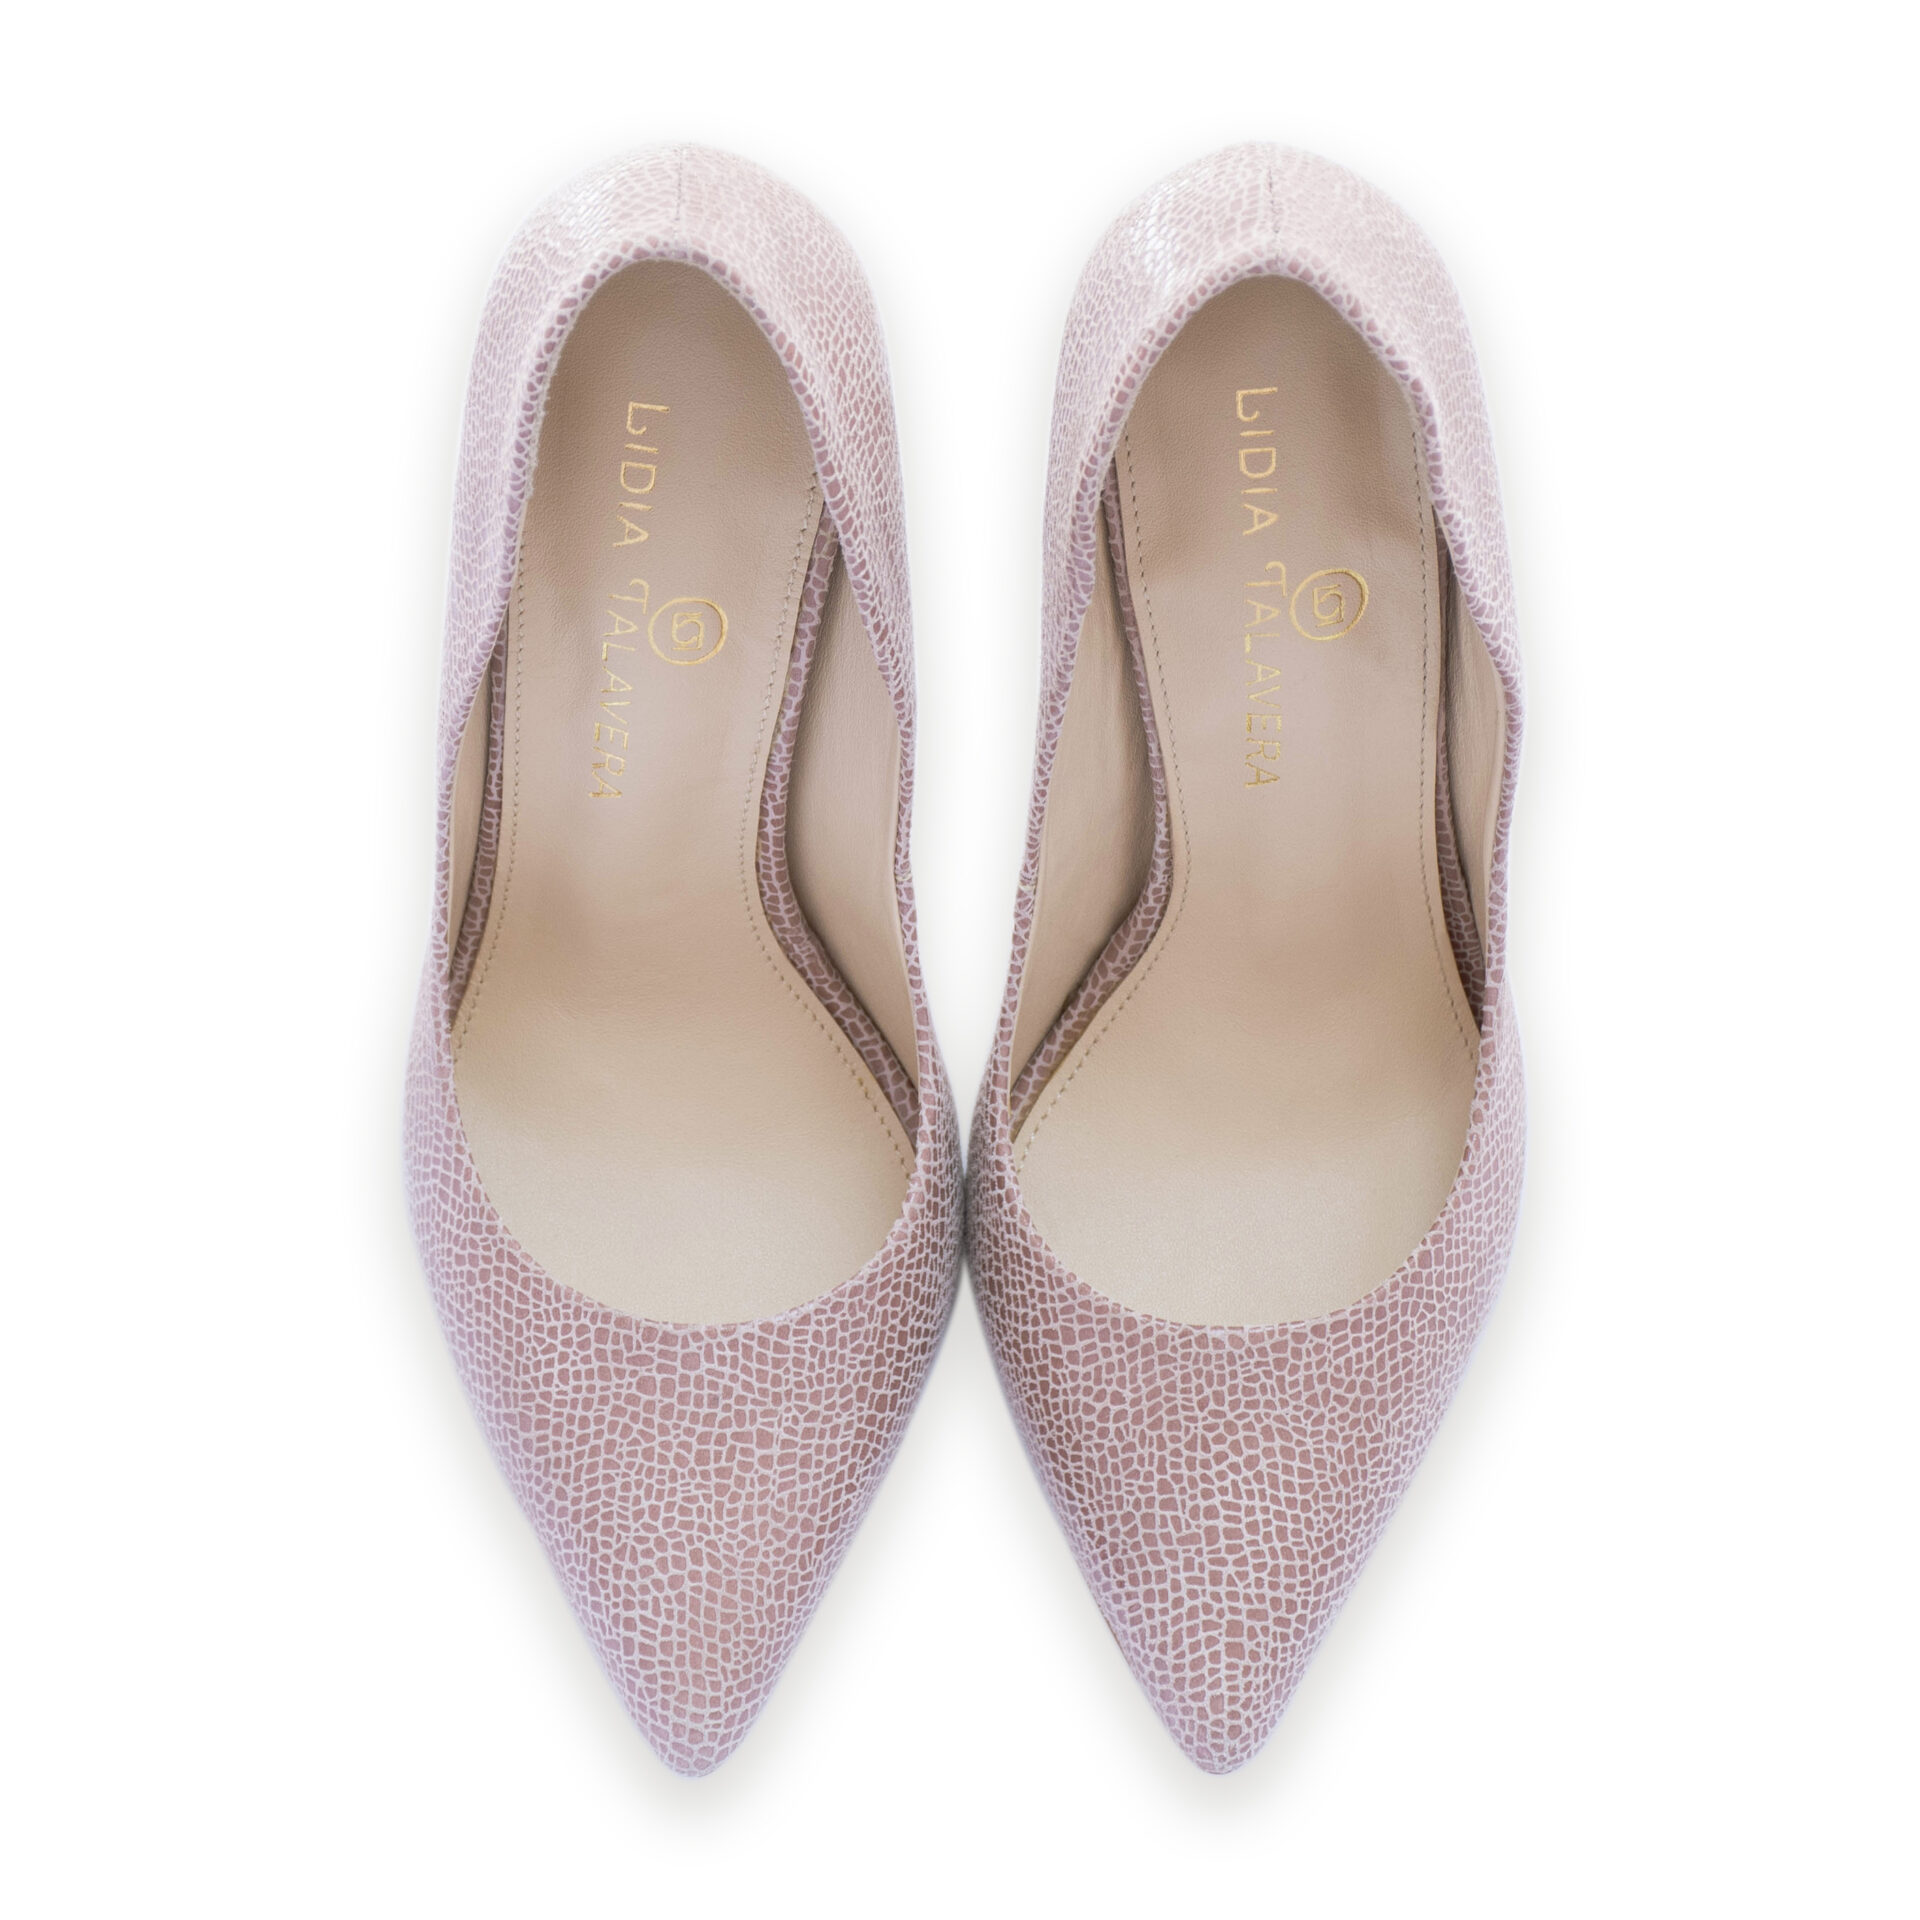 rose nude pointed toe stilettoes